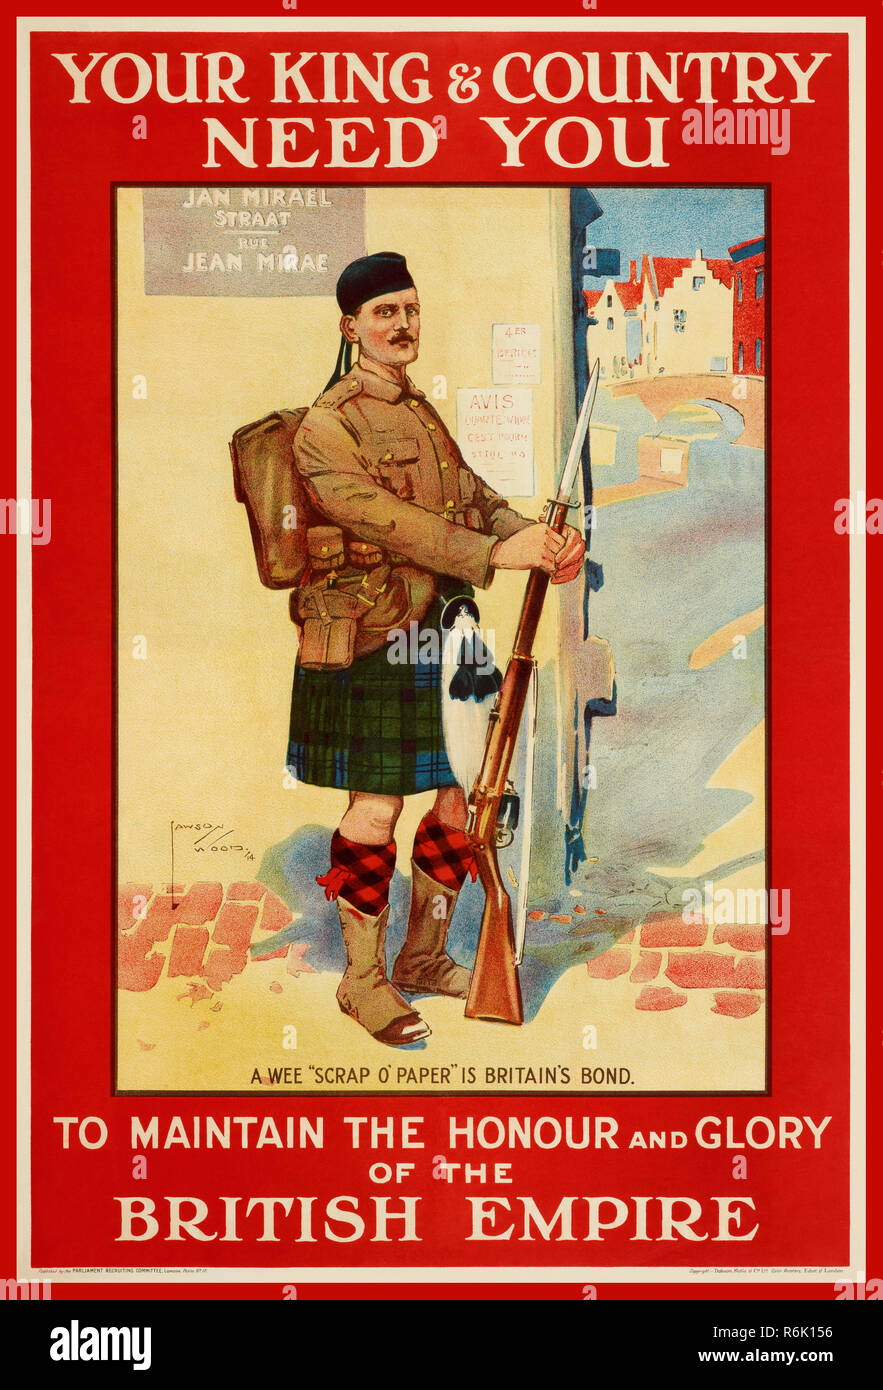 Vintage WW1 British recruitment propaganda poster 'YOUR KING & COUNTRY NEED YOU' To maintain the honour and glory of the BRITISH EMPIRE.  Illustrating a Scots guard in kilt standing at ease on a French street 1914 World War One/ First World War/ World War 1 - Stock Image